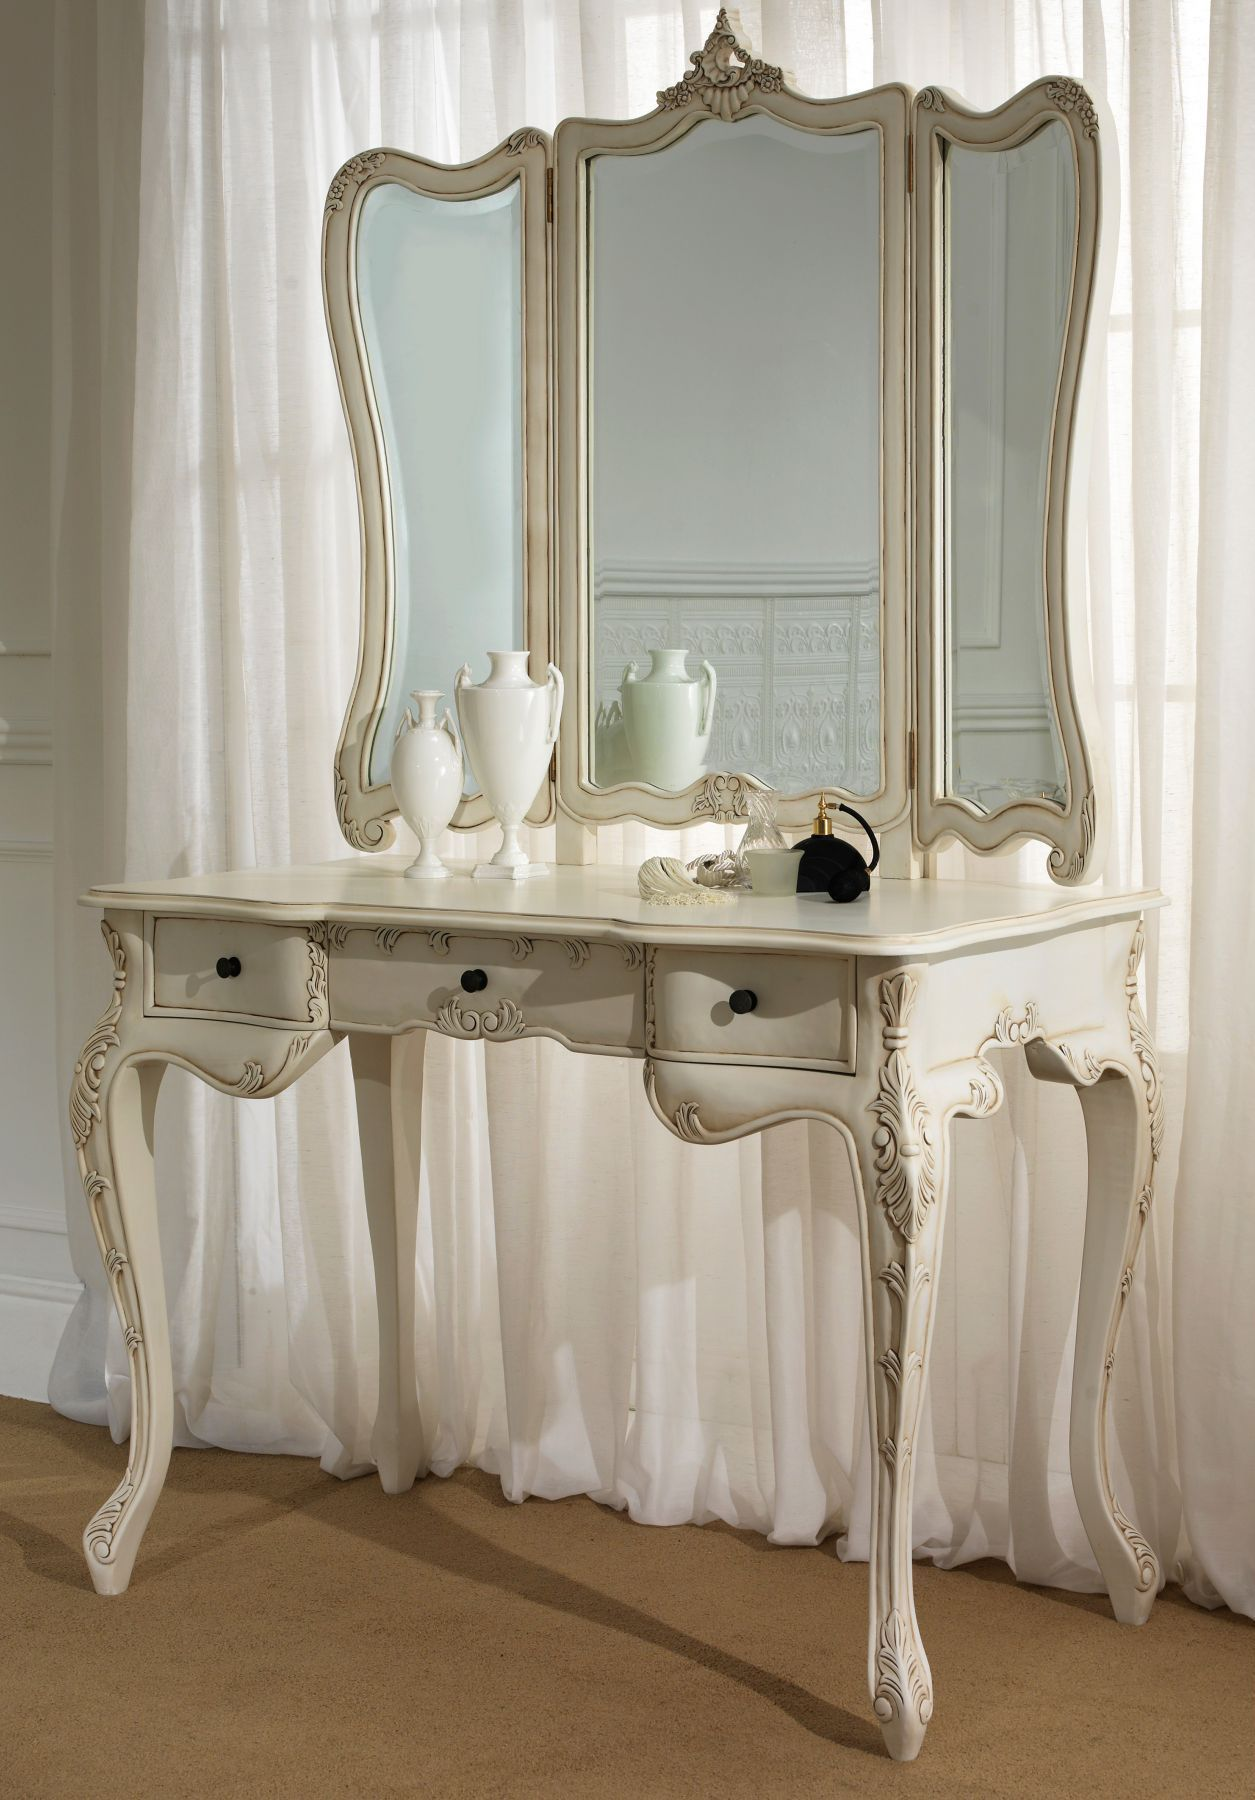 Contemporary White Antique Vanity Table Design With Big Mirror And White  Curtain Cover The Glass Window